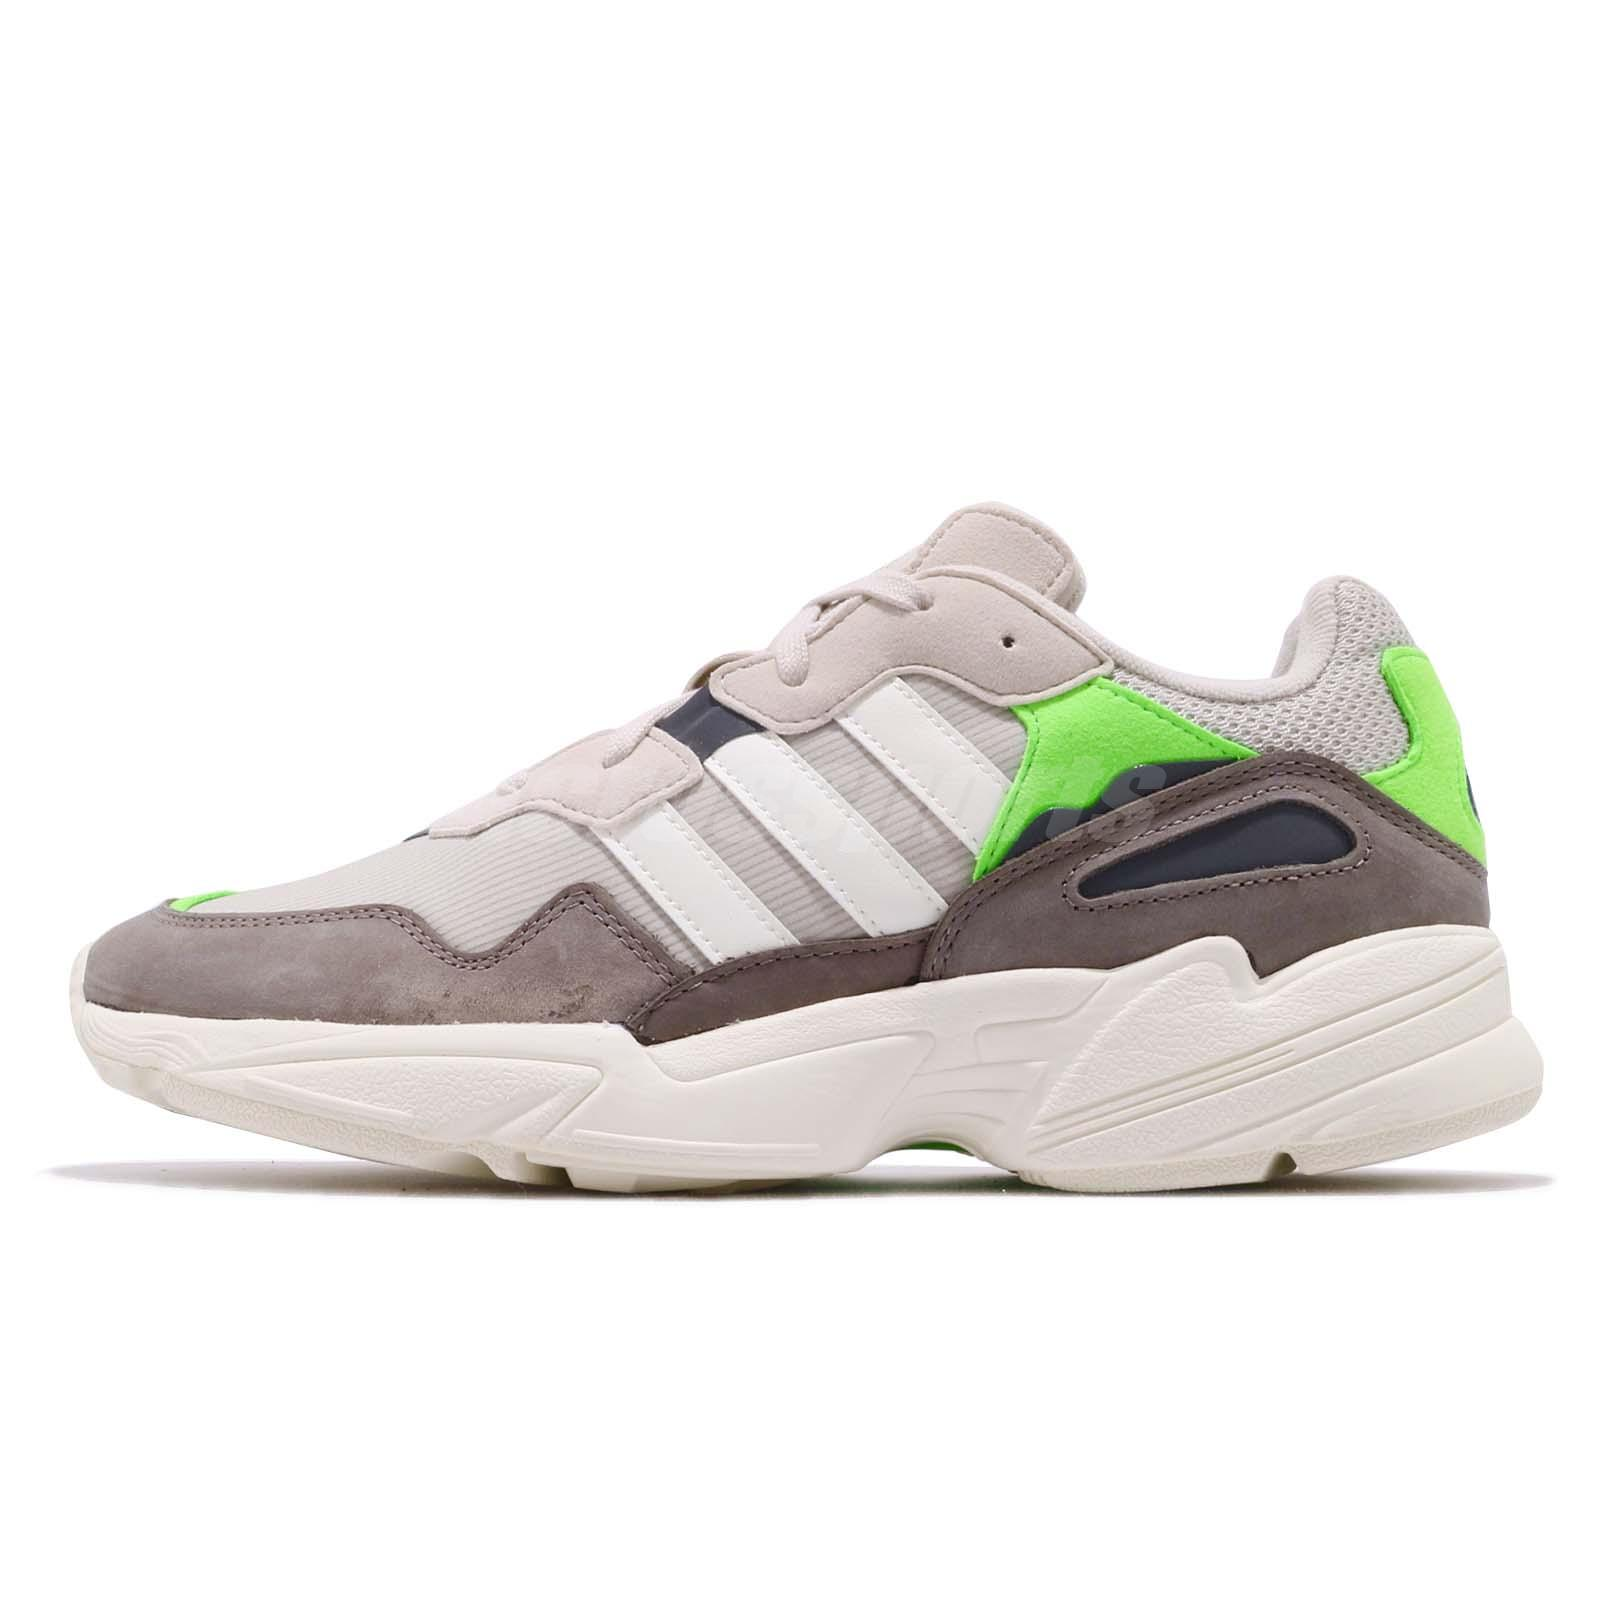 separation shoes 638b1 0b3c7 adidas Originals Yung-96 Solar Green Off White Grey Men Running Shoes F97182